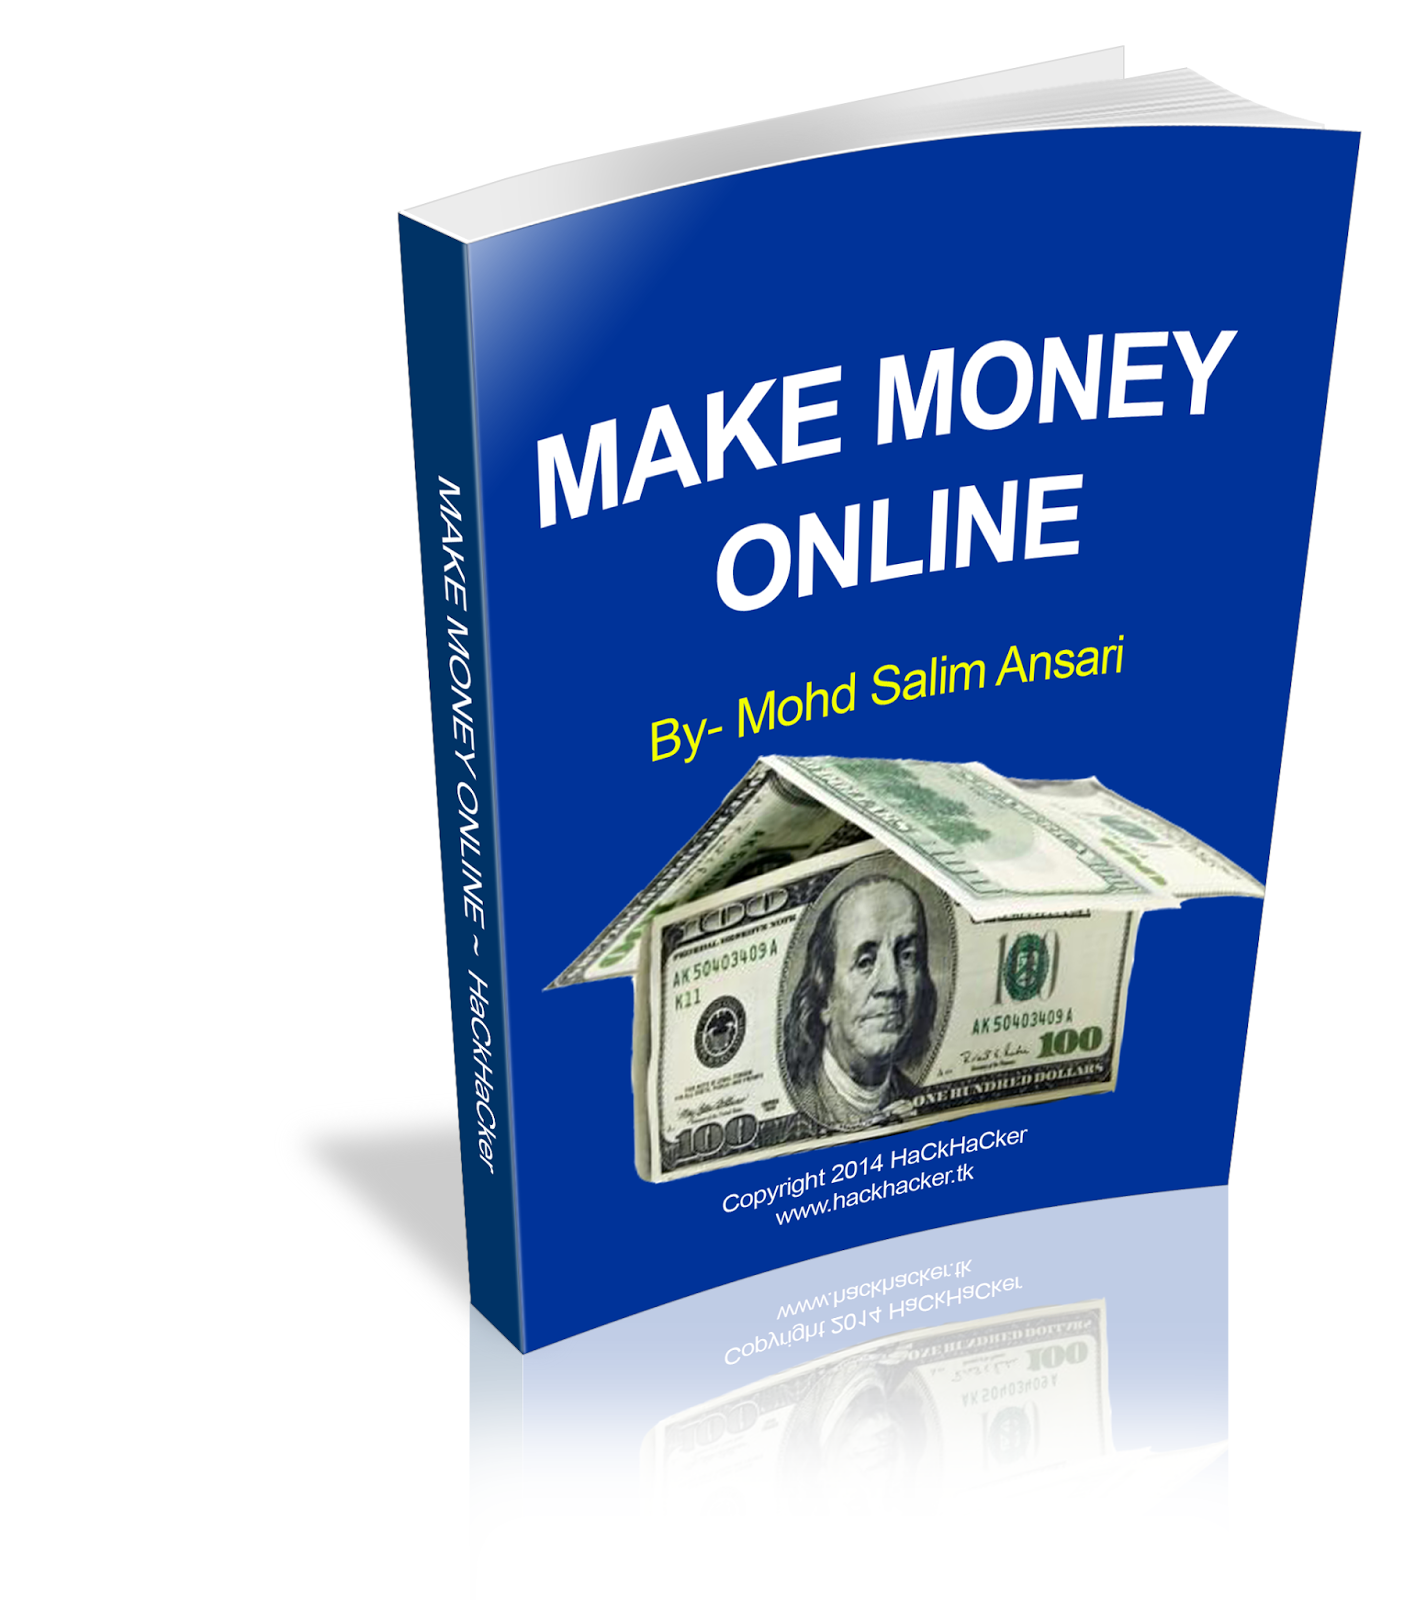 make money online earn money online pdf free download mohd salim ansari hackhacker